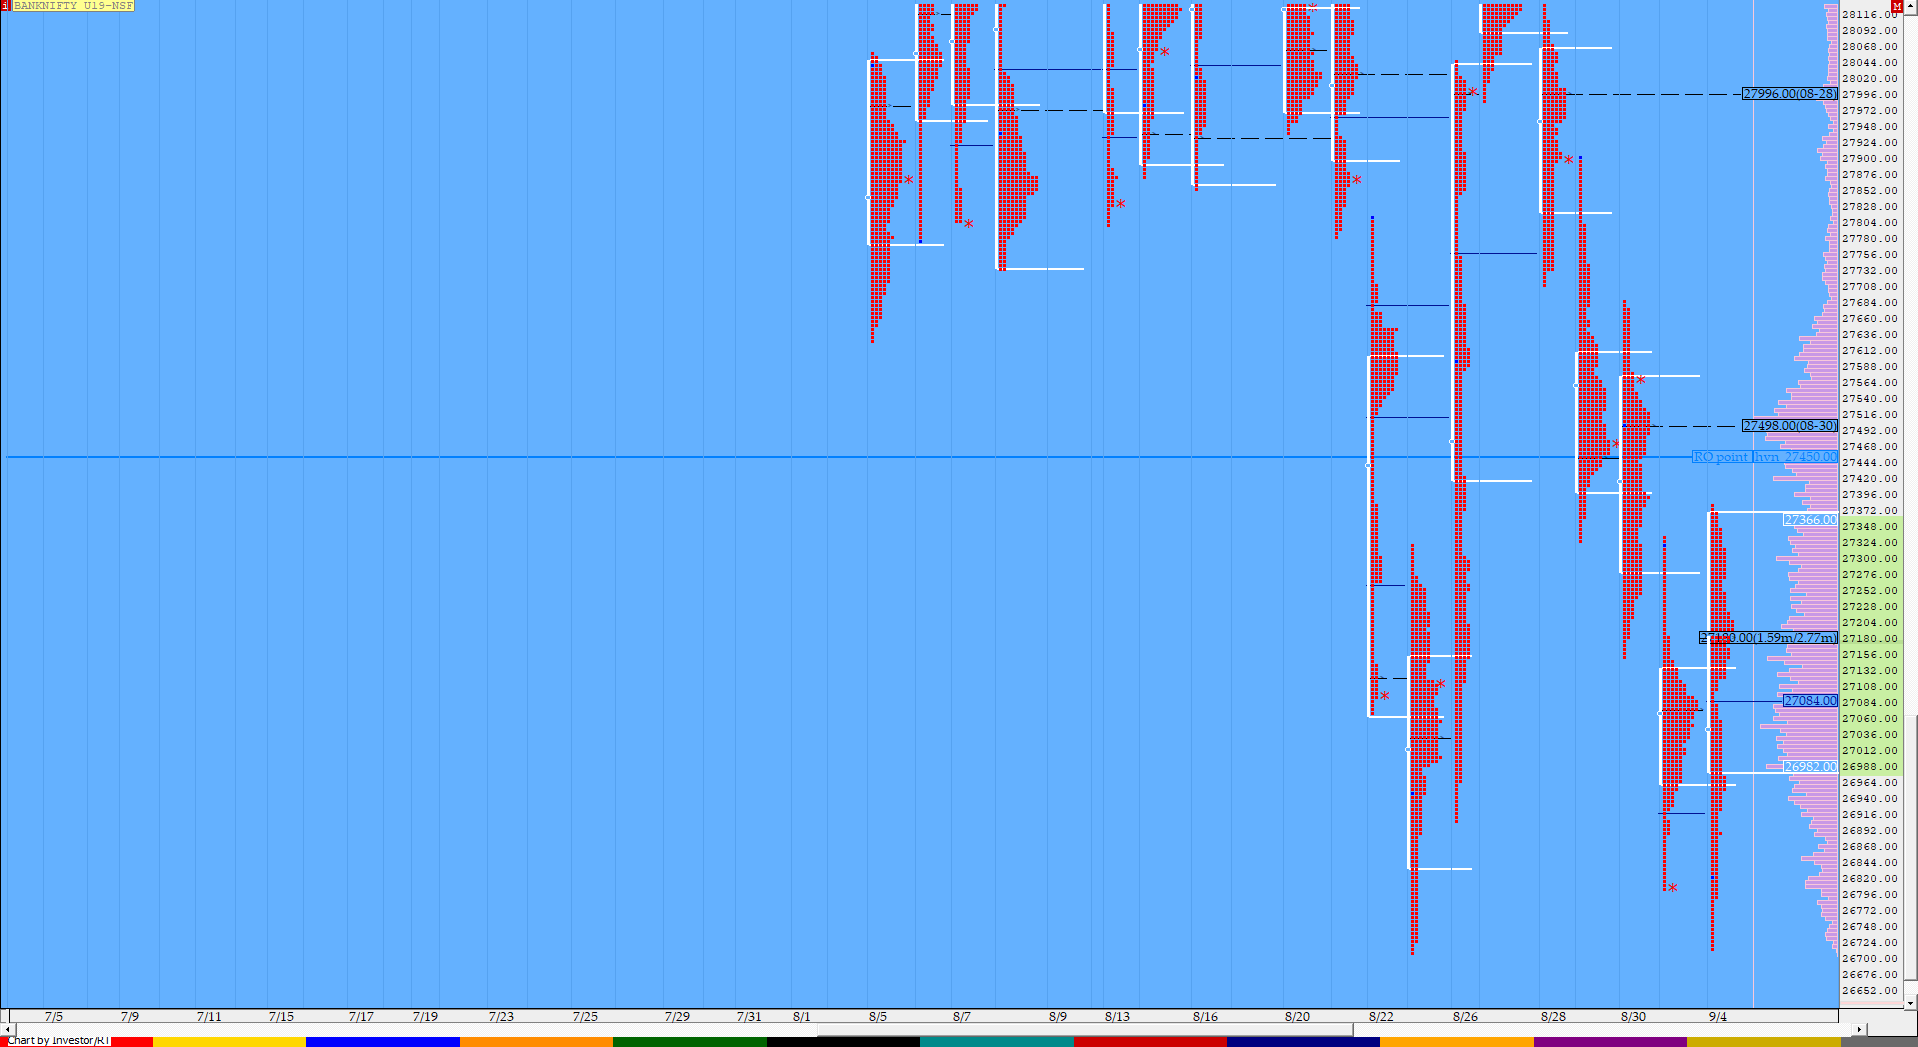 Market Profile Analysis dated 4th September 3